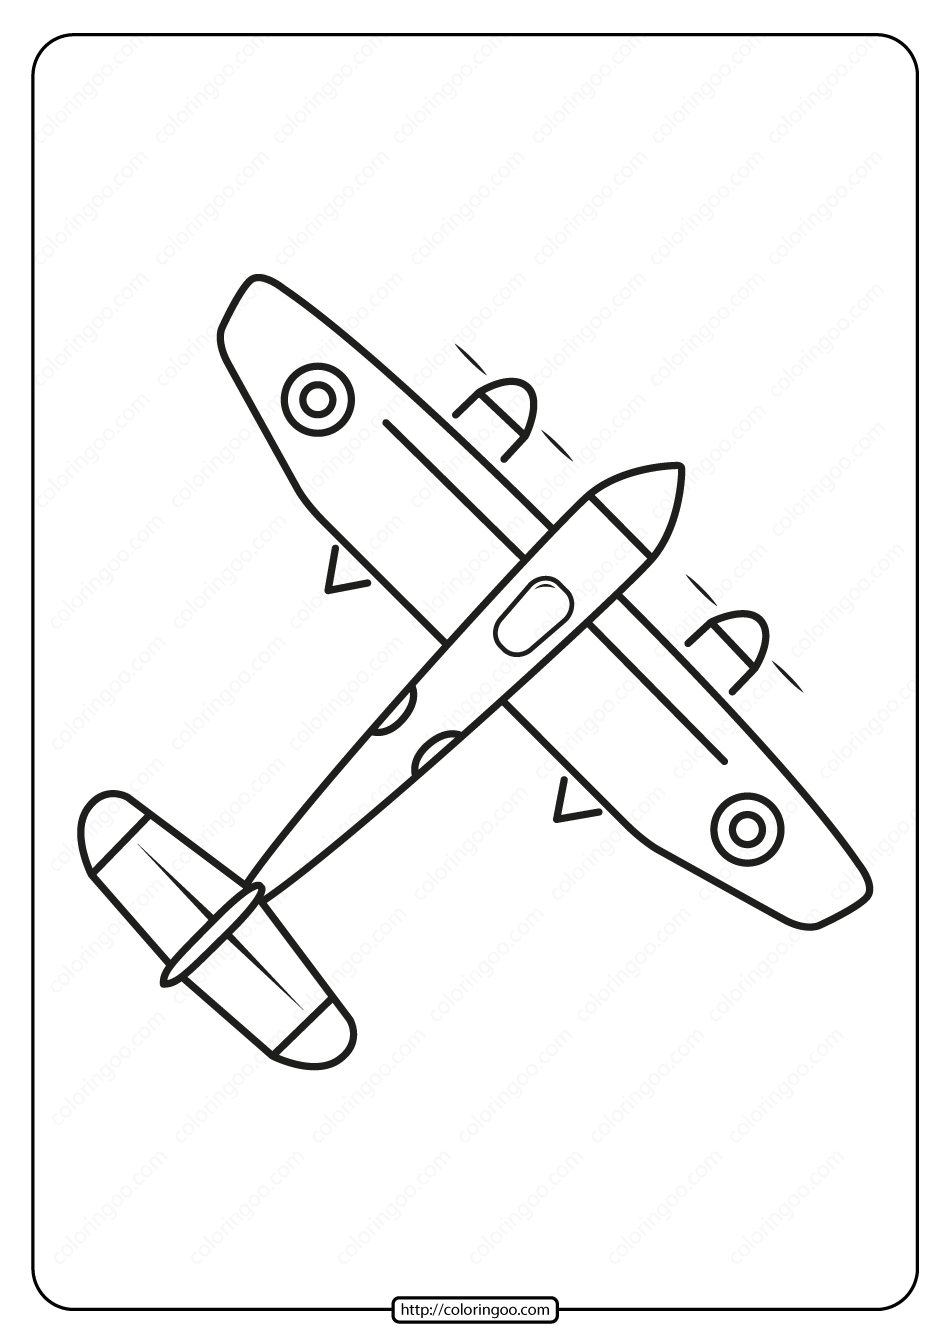 Free Printable Airplane Coloring Page In 2020 Coloring Pages Airplane Coloring Pages Free Printable Coloring